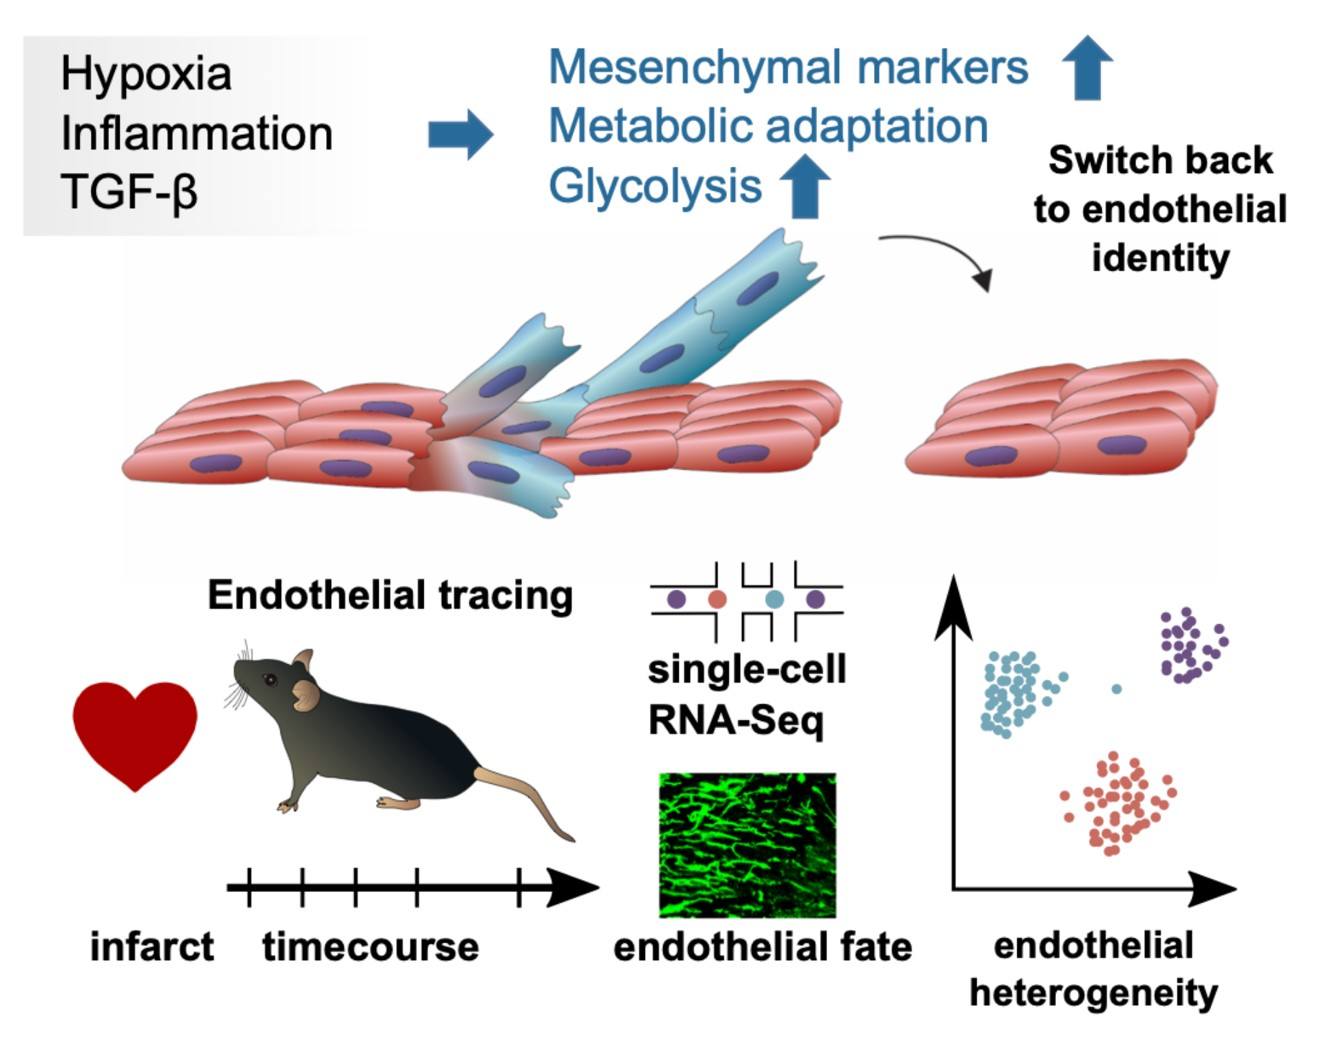 Nature Communications: Endothelial cells show transient mesenchymal phenotype after infarct